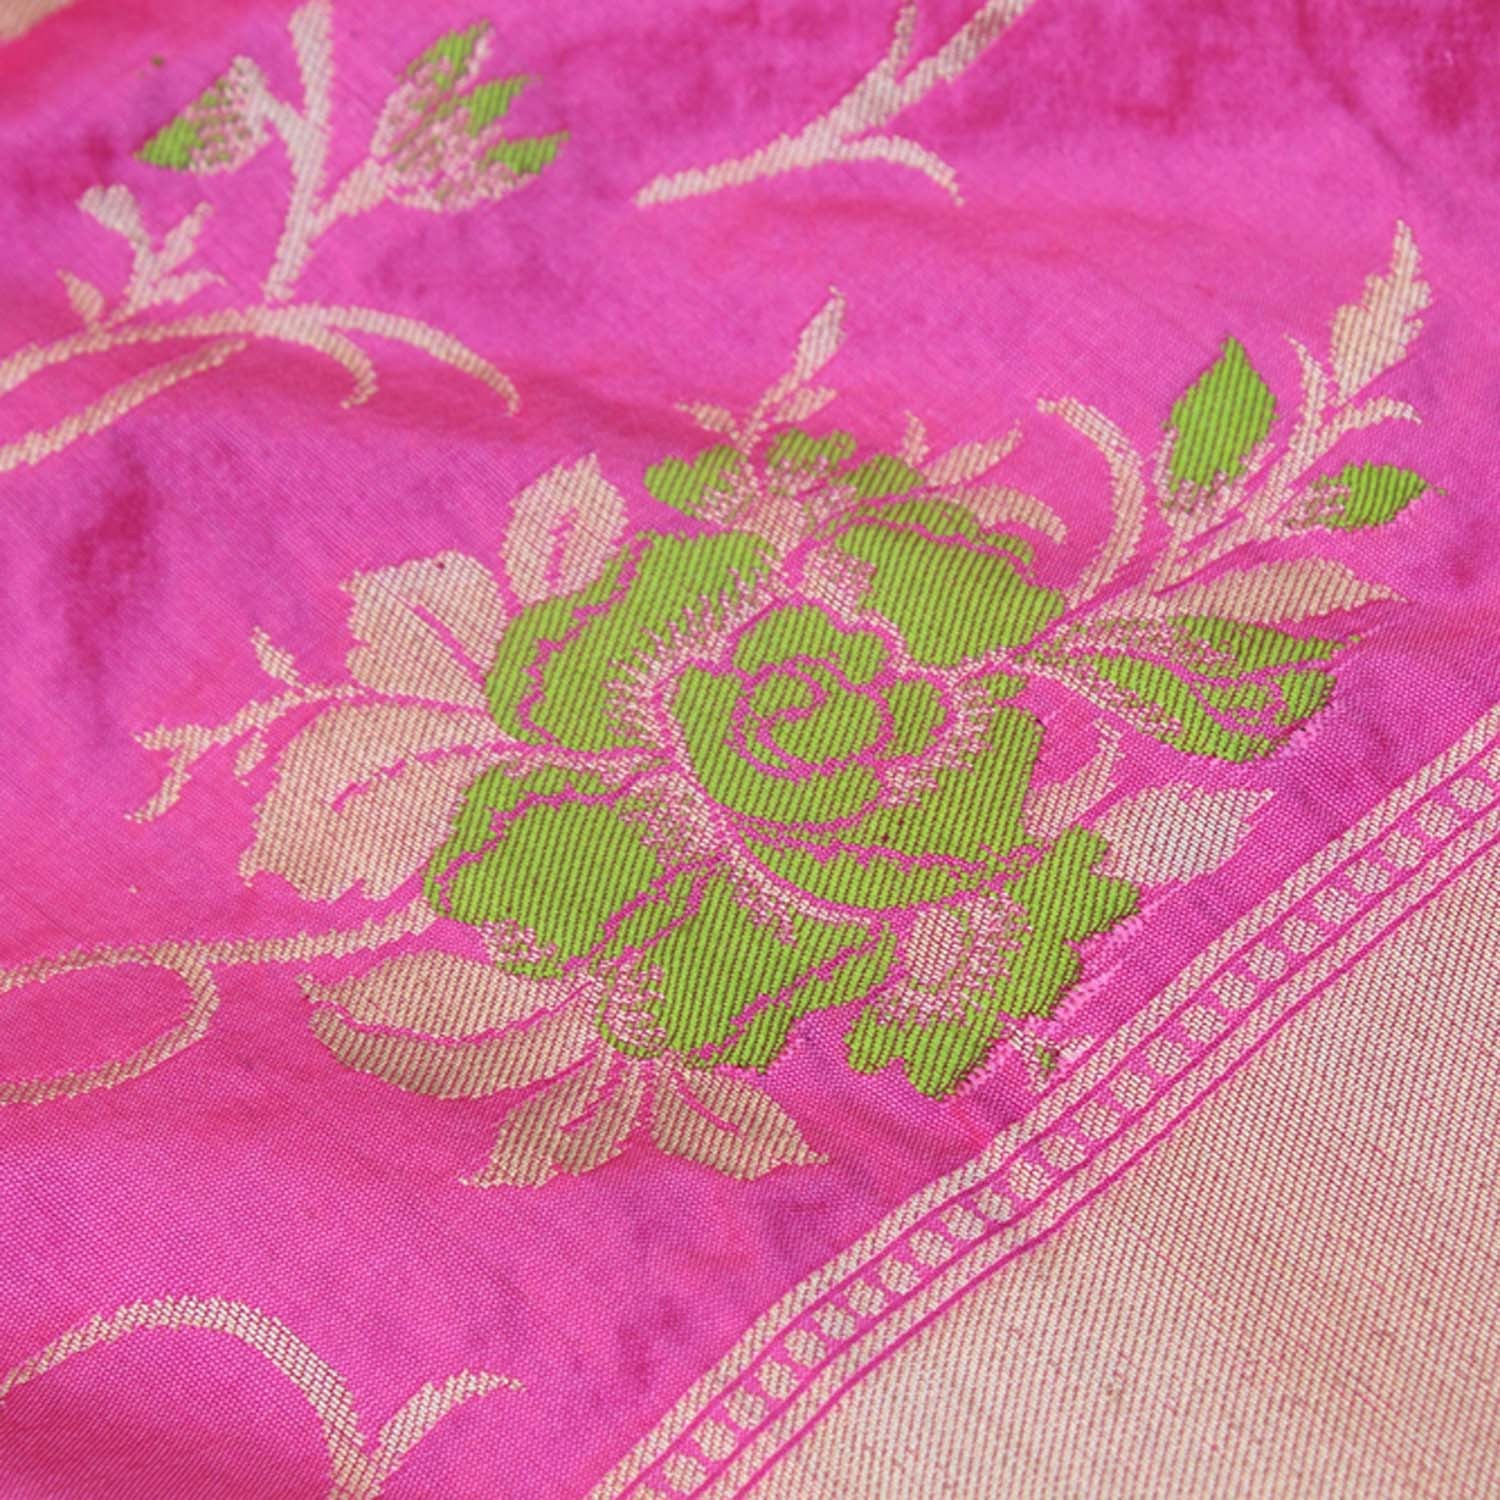 Indian Pink-Rose Pink Pure Katan Silk  Banarasi Handloom Dupatta - Tilfi